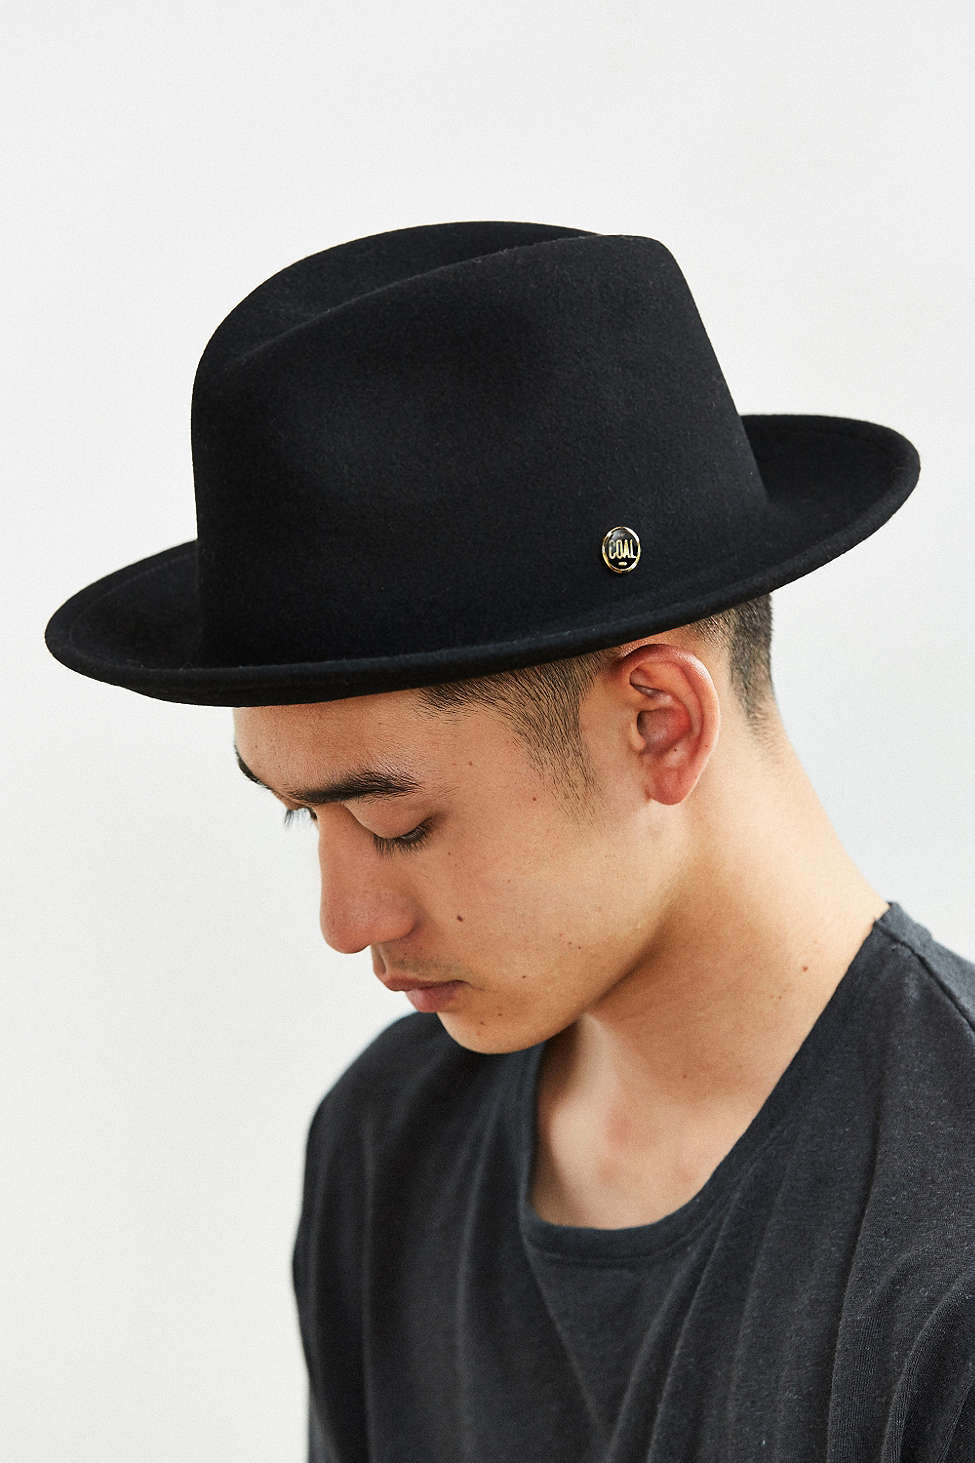 a6ffdcd7b32 Lyst - Coal Howell Crushable Fedora Hat in Black for Men